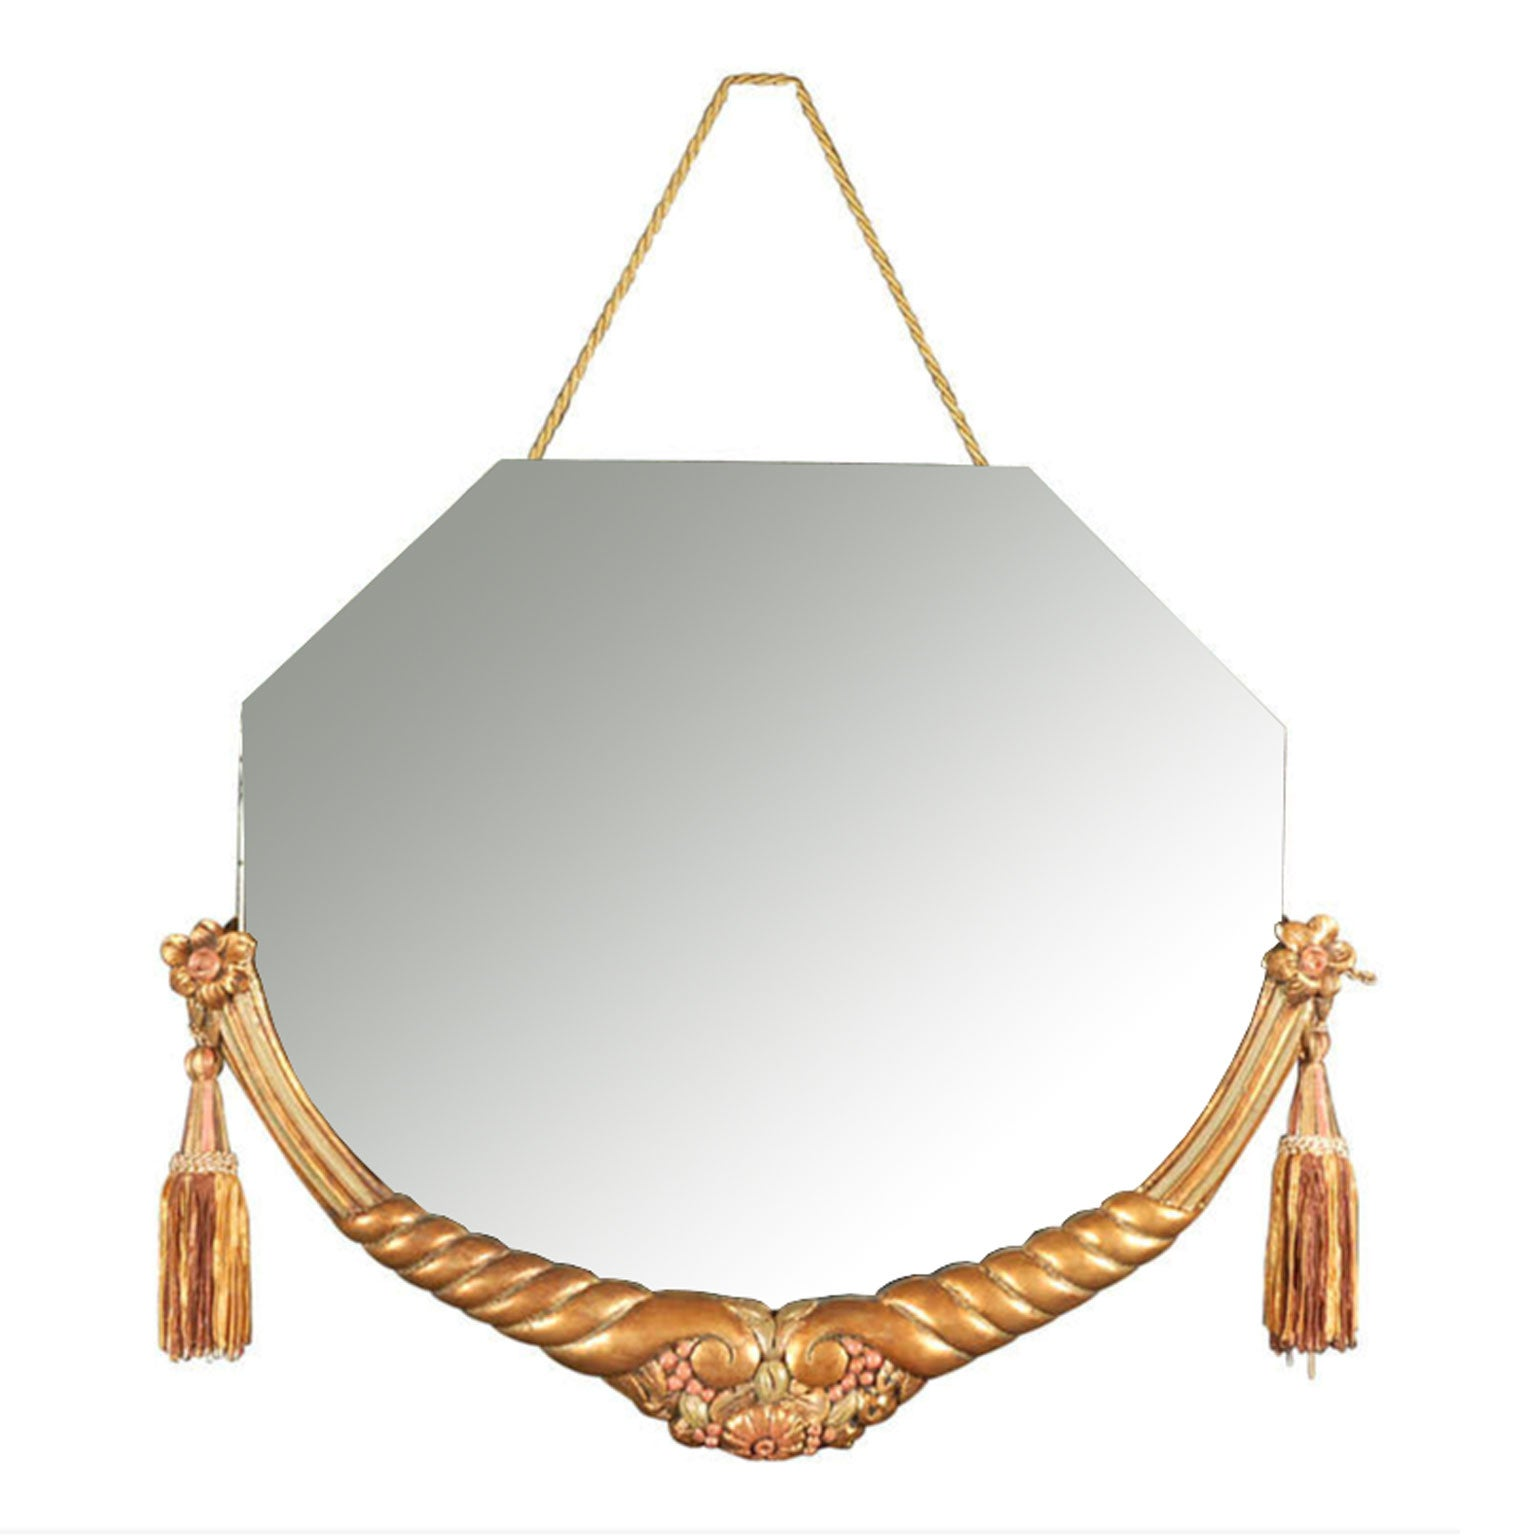 Original Art Deco Mirror Attributed to Maurice Jallot